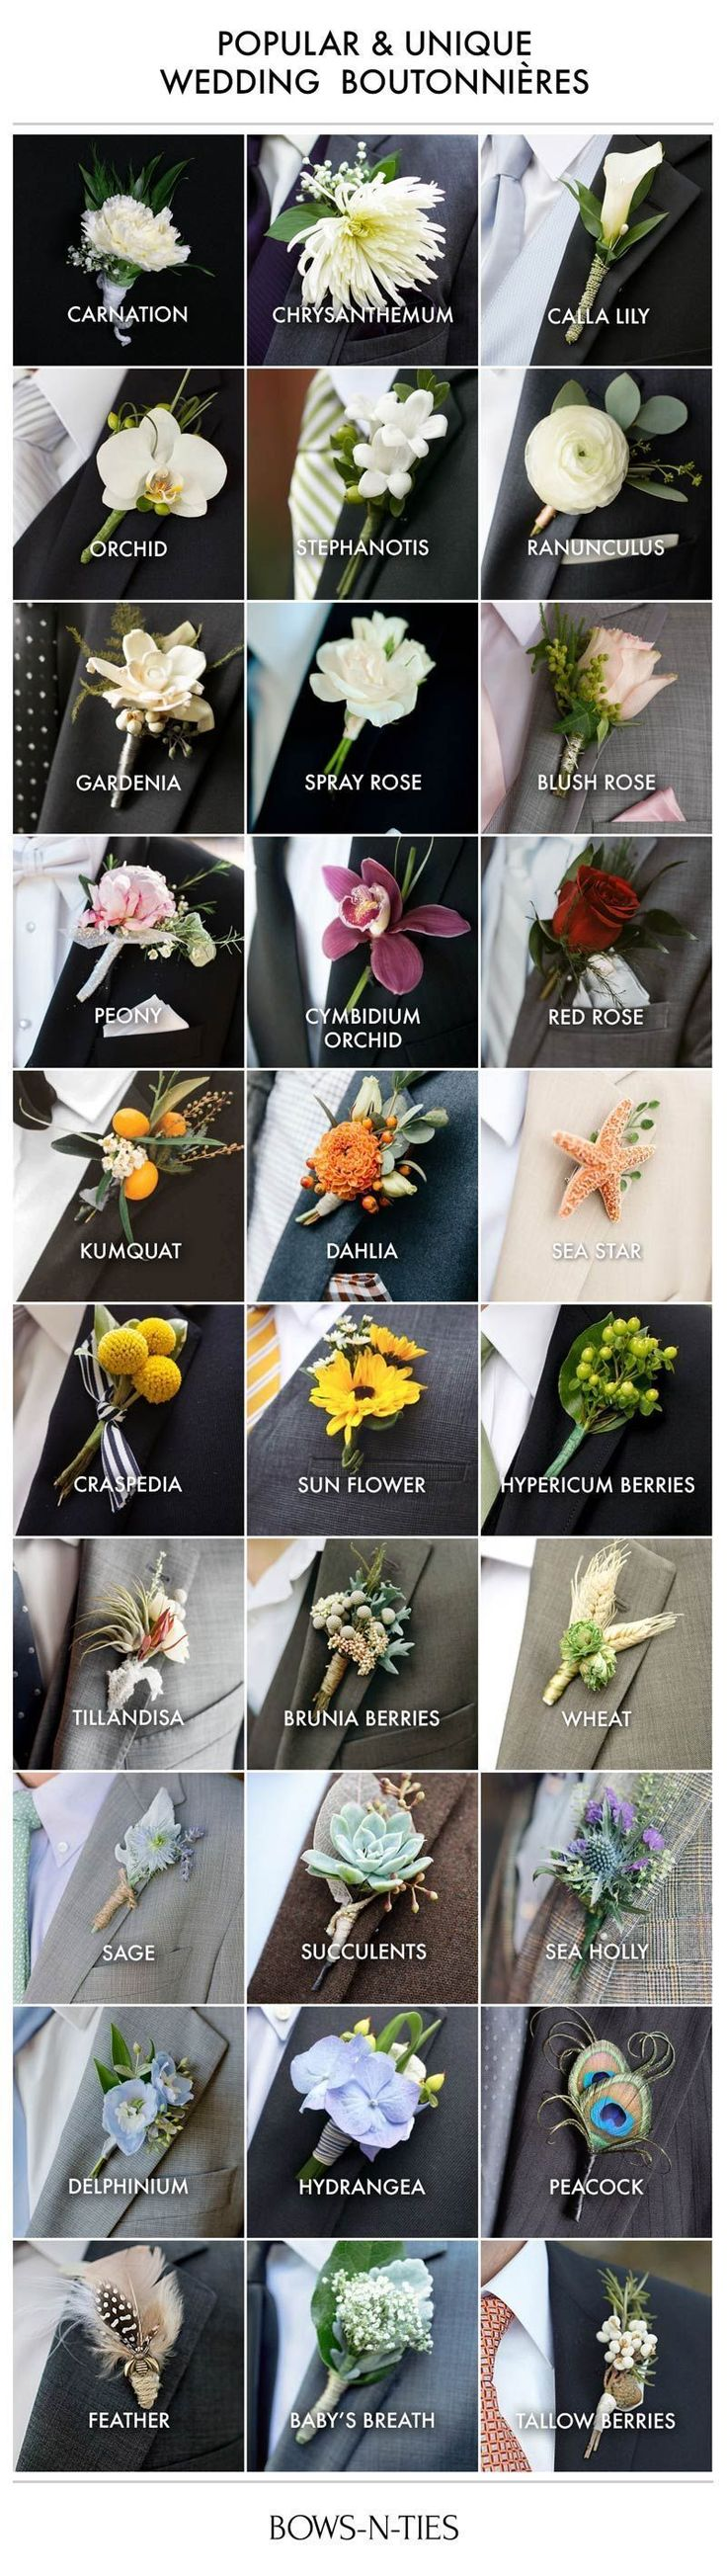 Here's an amazing guide to boutonnieres that not only lists the most popular and unique options but also breaks them down by wedding theme. #weddingplanning